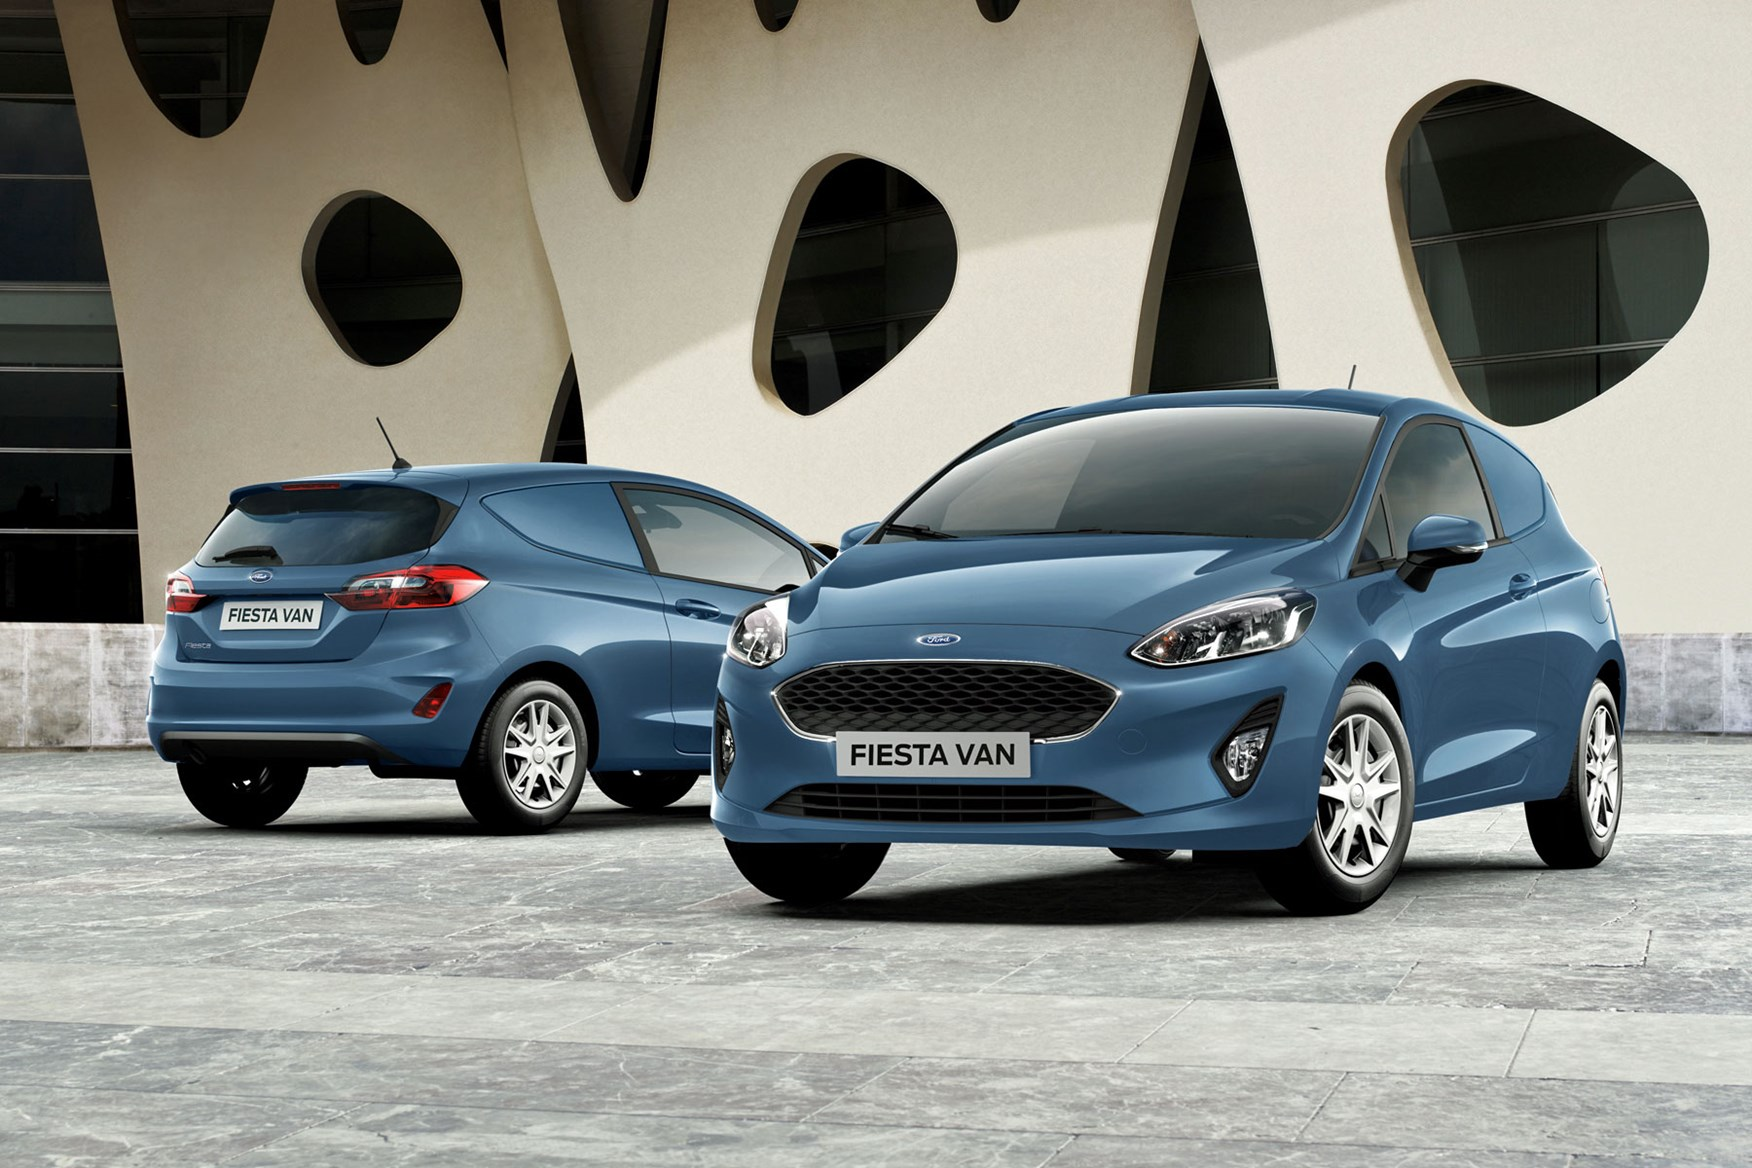 Ford Fiesta Van - front and rear view, blue